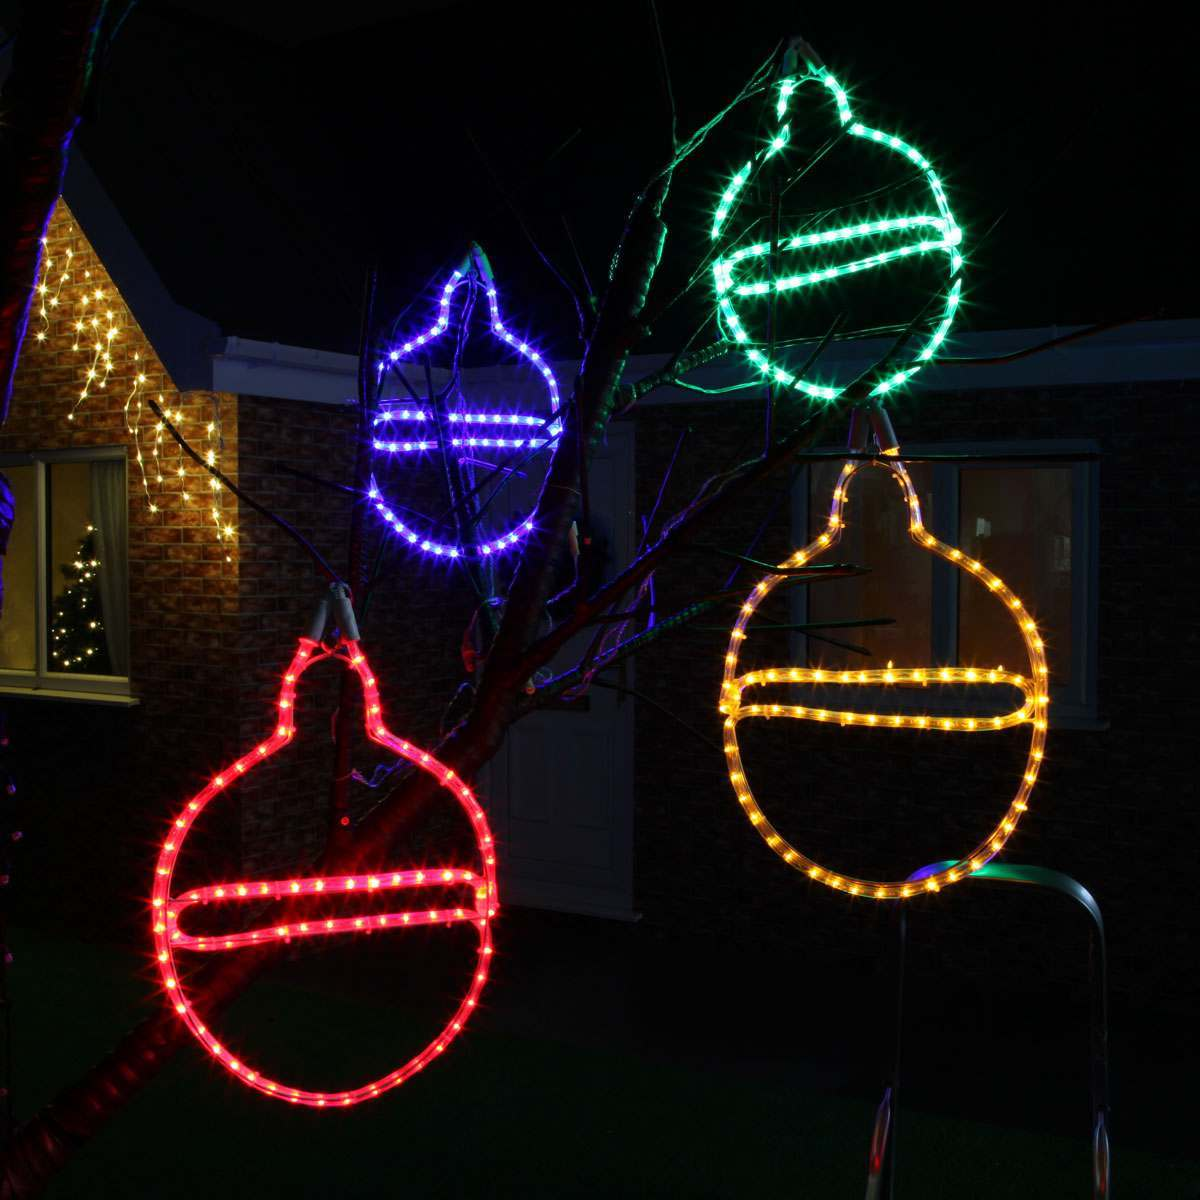 40cm Rope Light Bauble Silhouette, Connectable, 72 LEDs